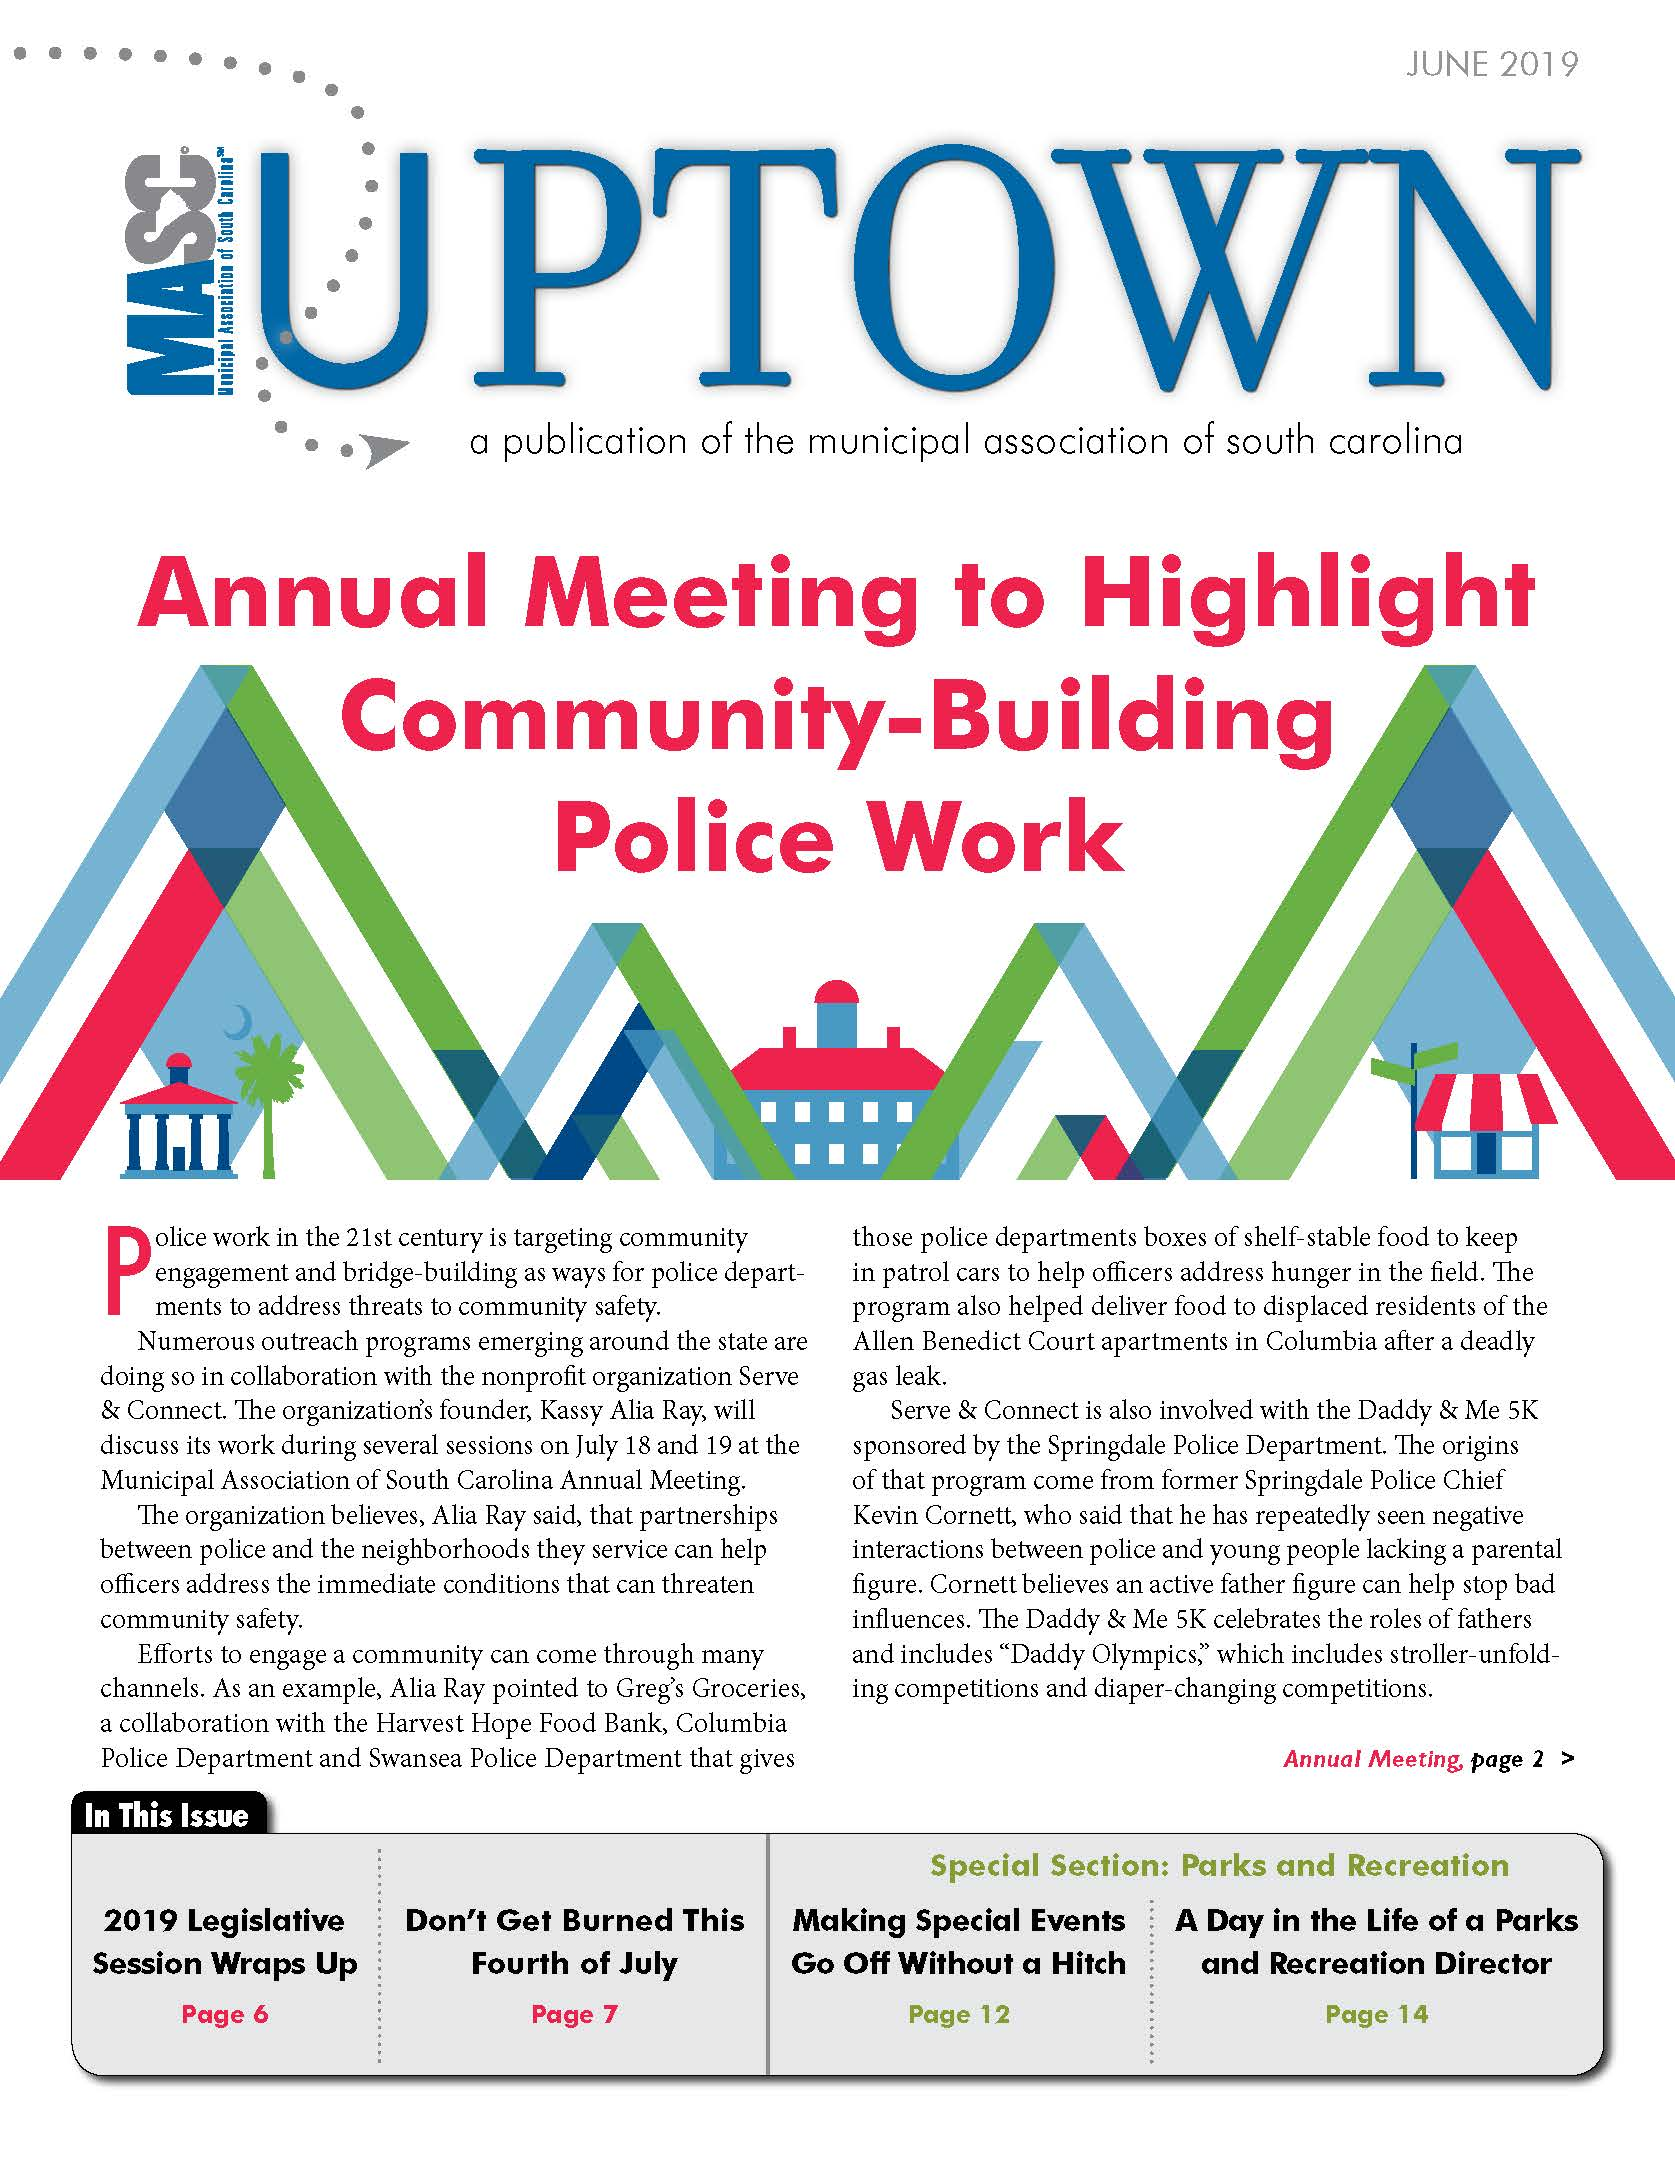 June 2019 Uptown Cover